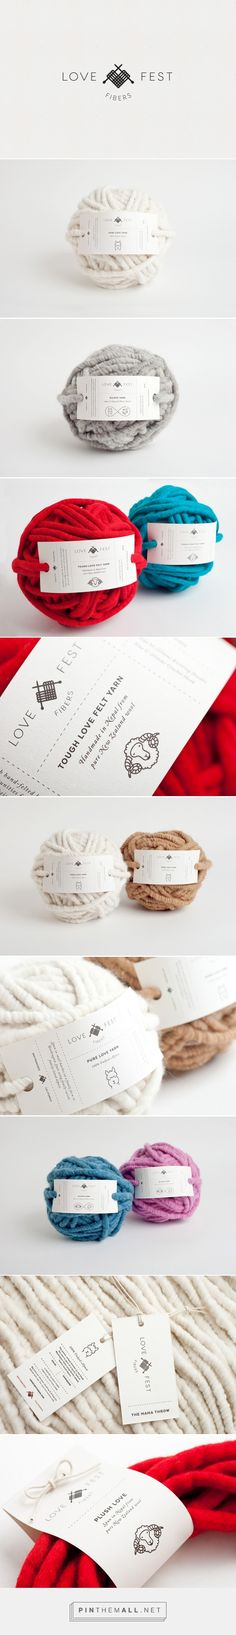 #packaging_other_markets | Love Fest Fibers by Menta Guadalajara